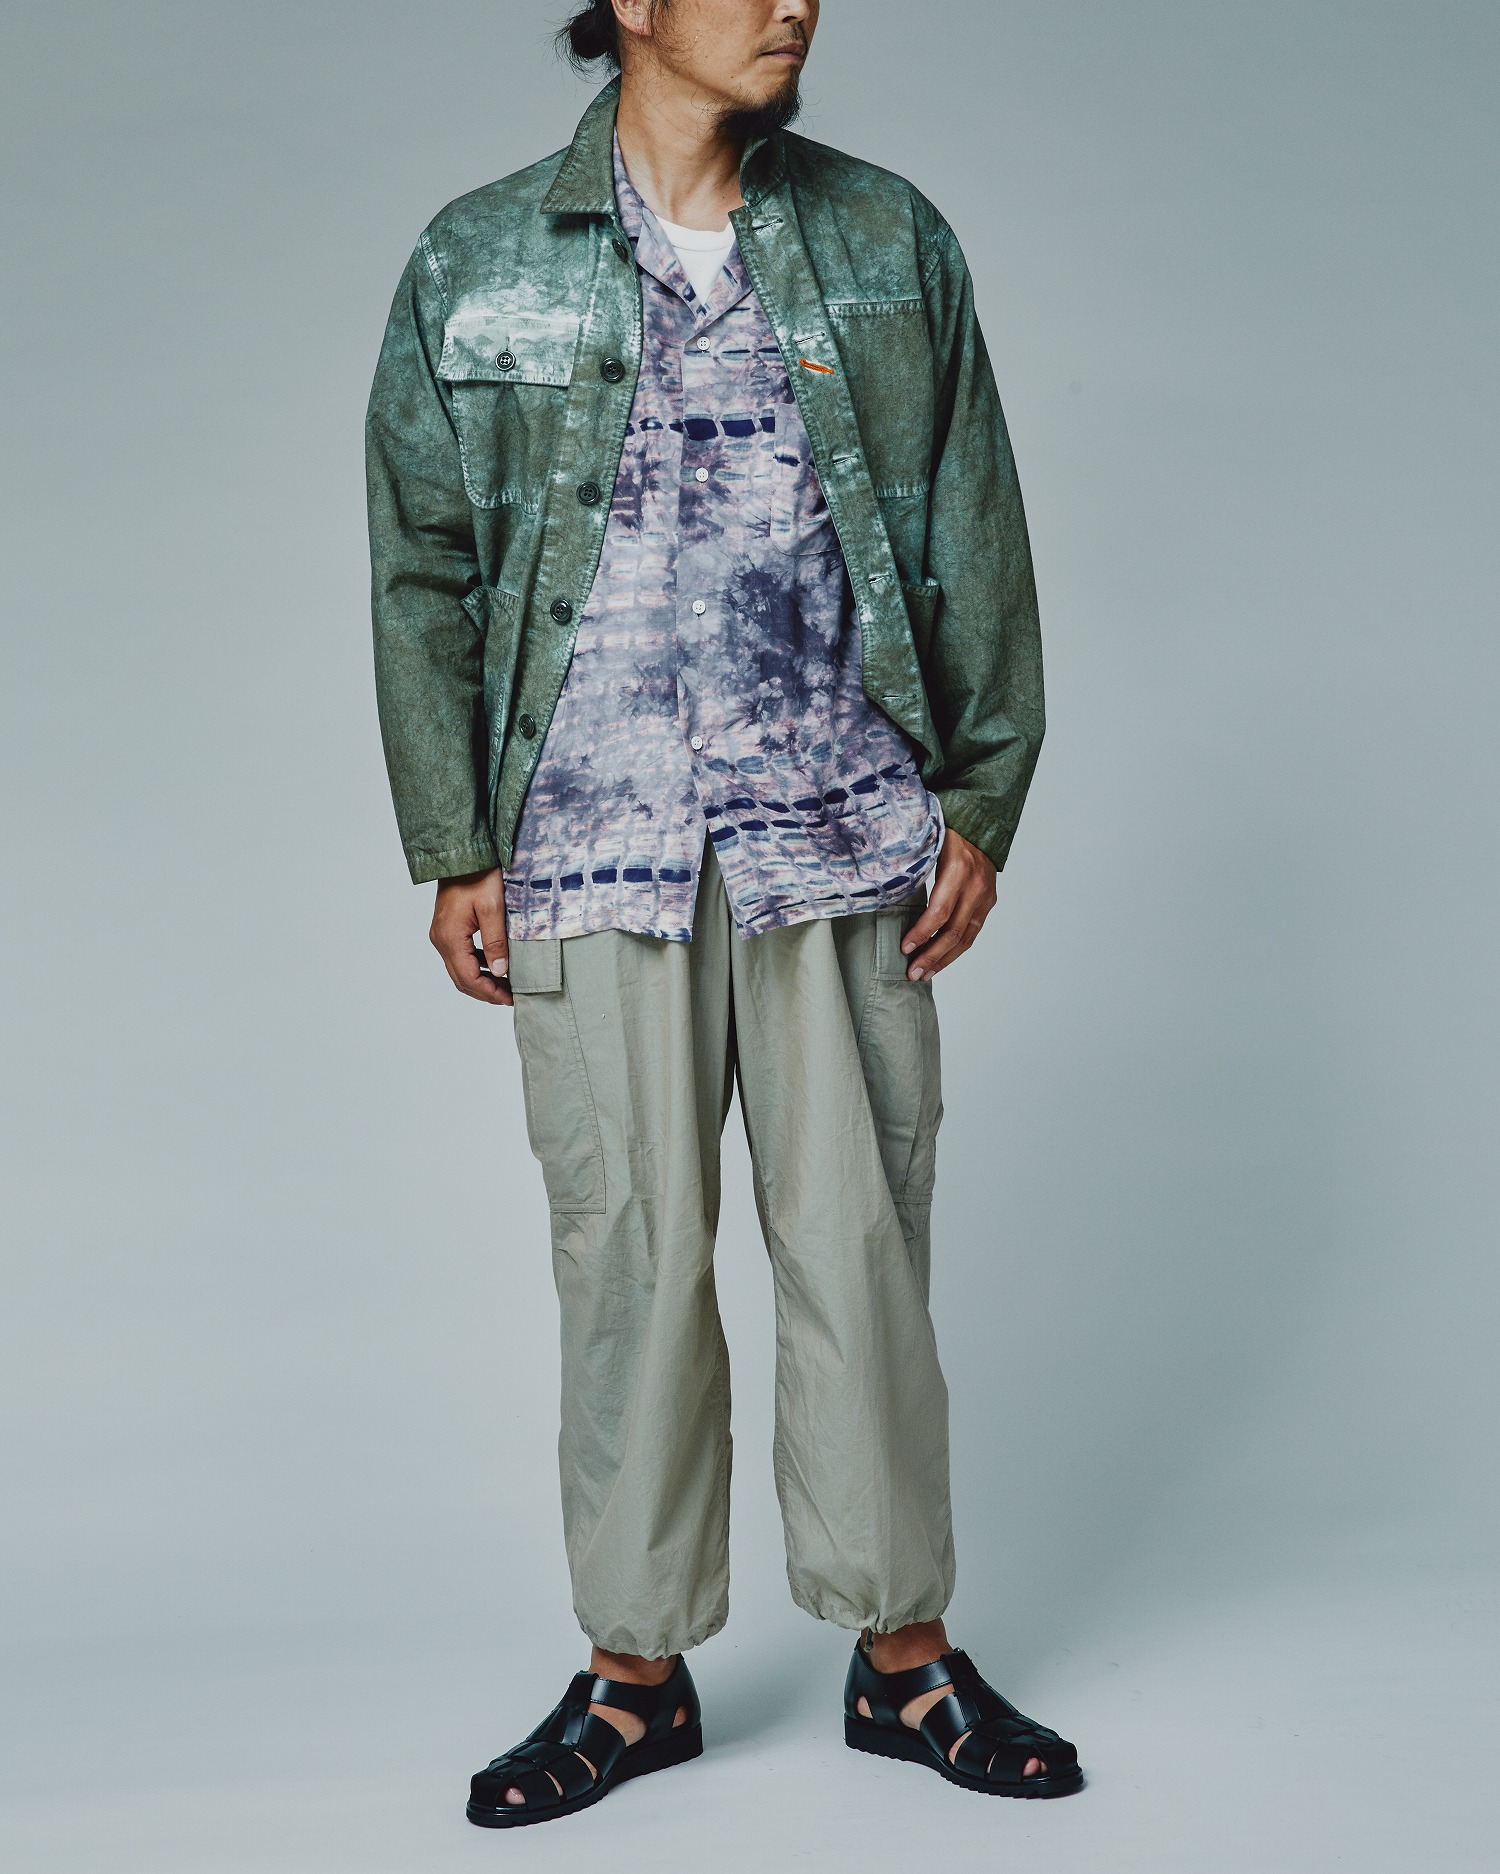 【MEN'S 2021 SPRING】JOHNBULL LOOK アイテム